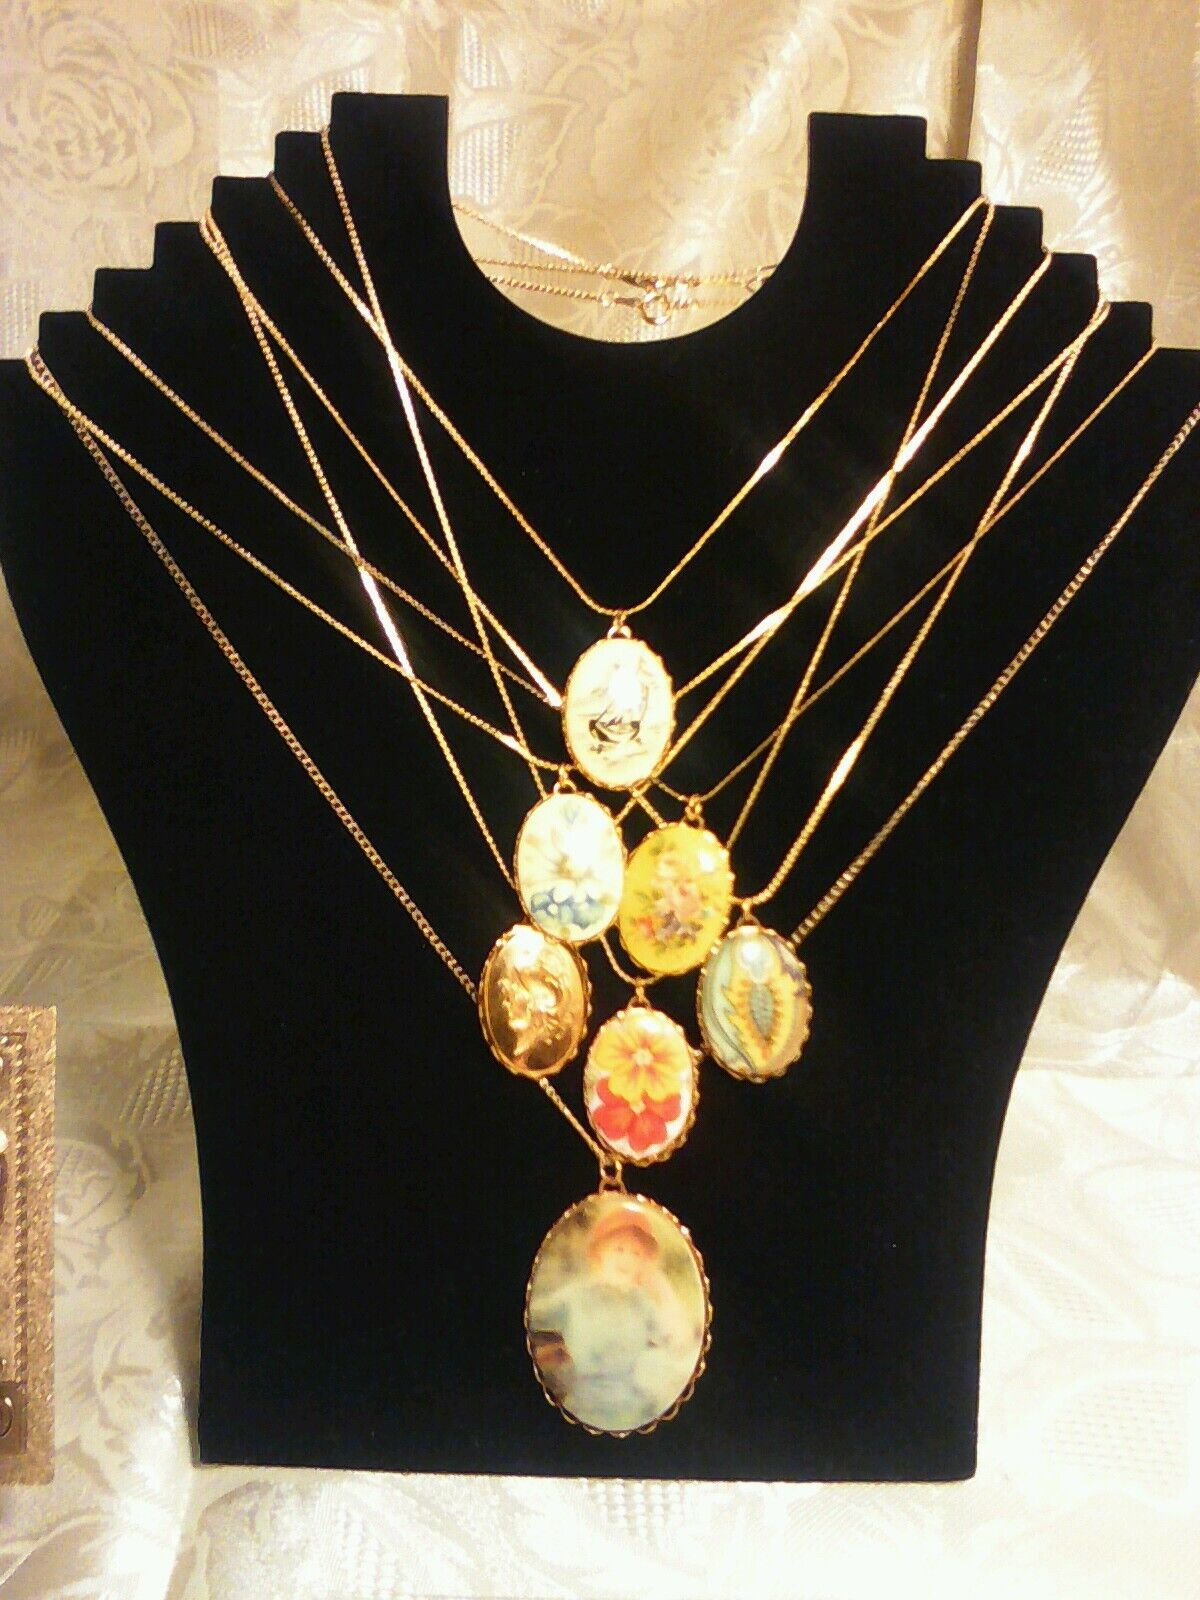 70+Pc.MIXED JEWELRY~LOT! RINGS/Earrings/GEMSTONES&MIXED Necklaces/GOLD$100 USA